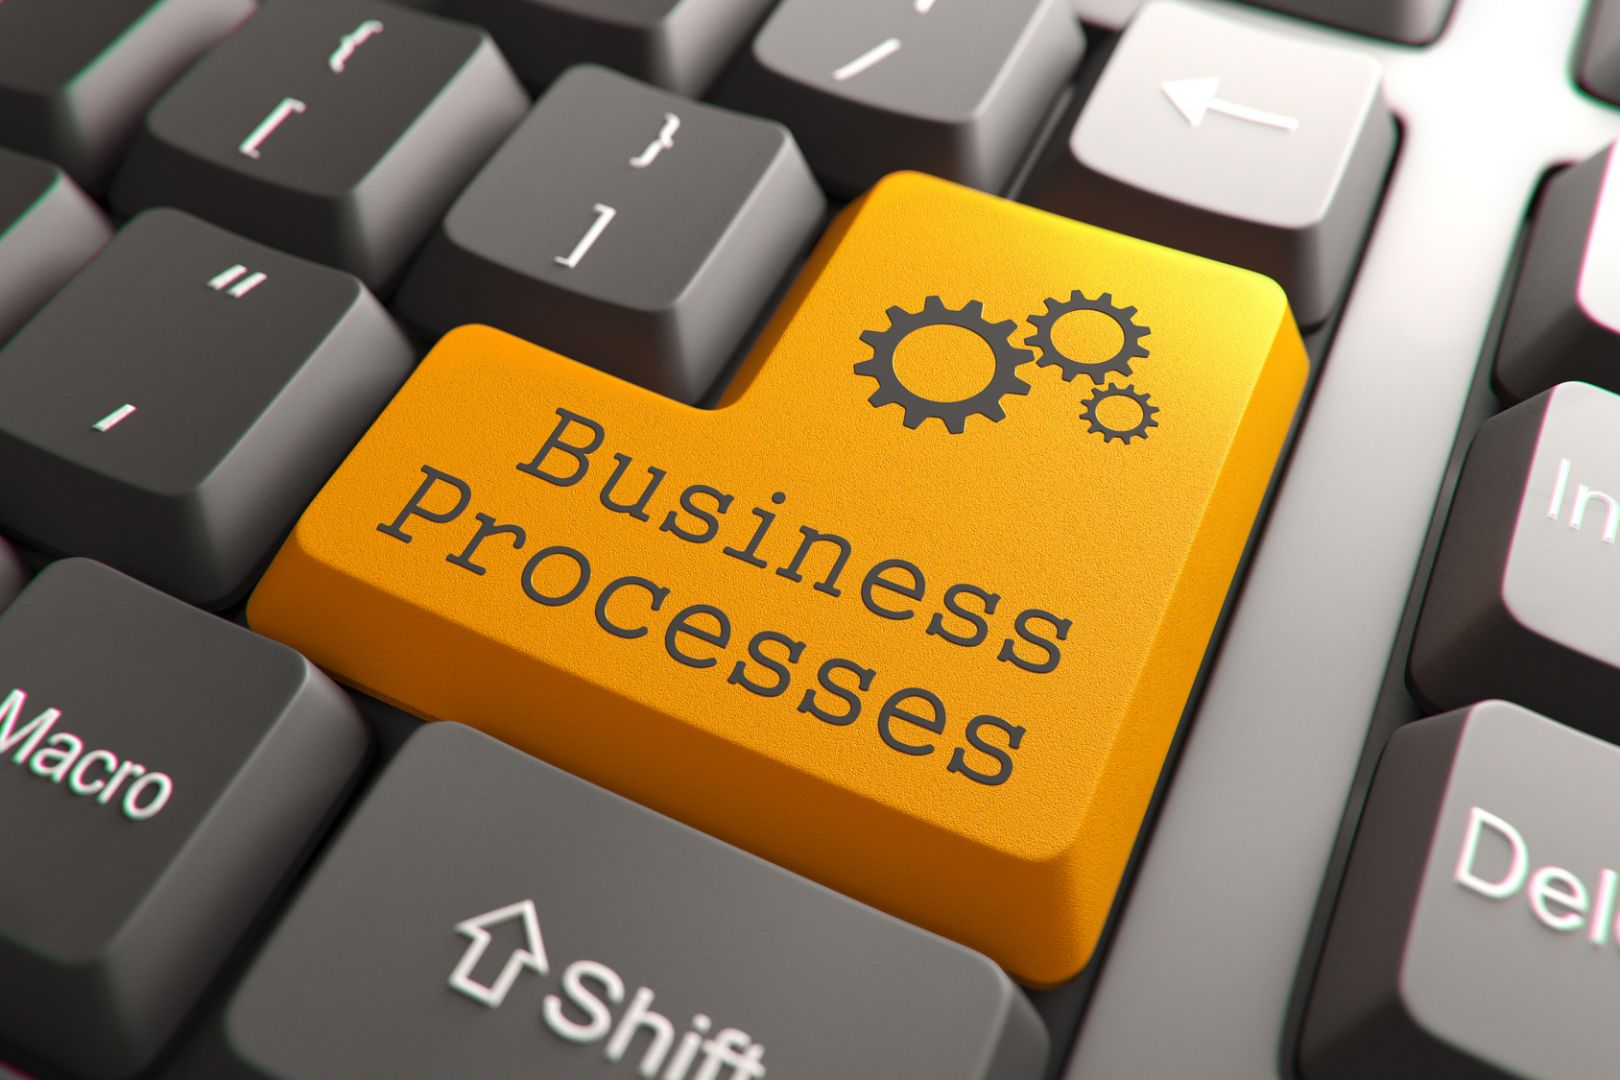 Business Process Management & Improvement (BPMI)